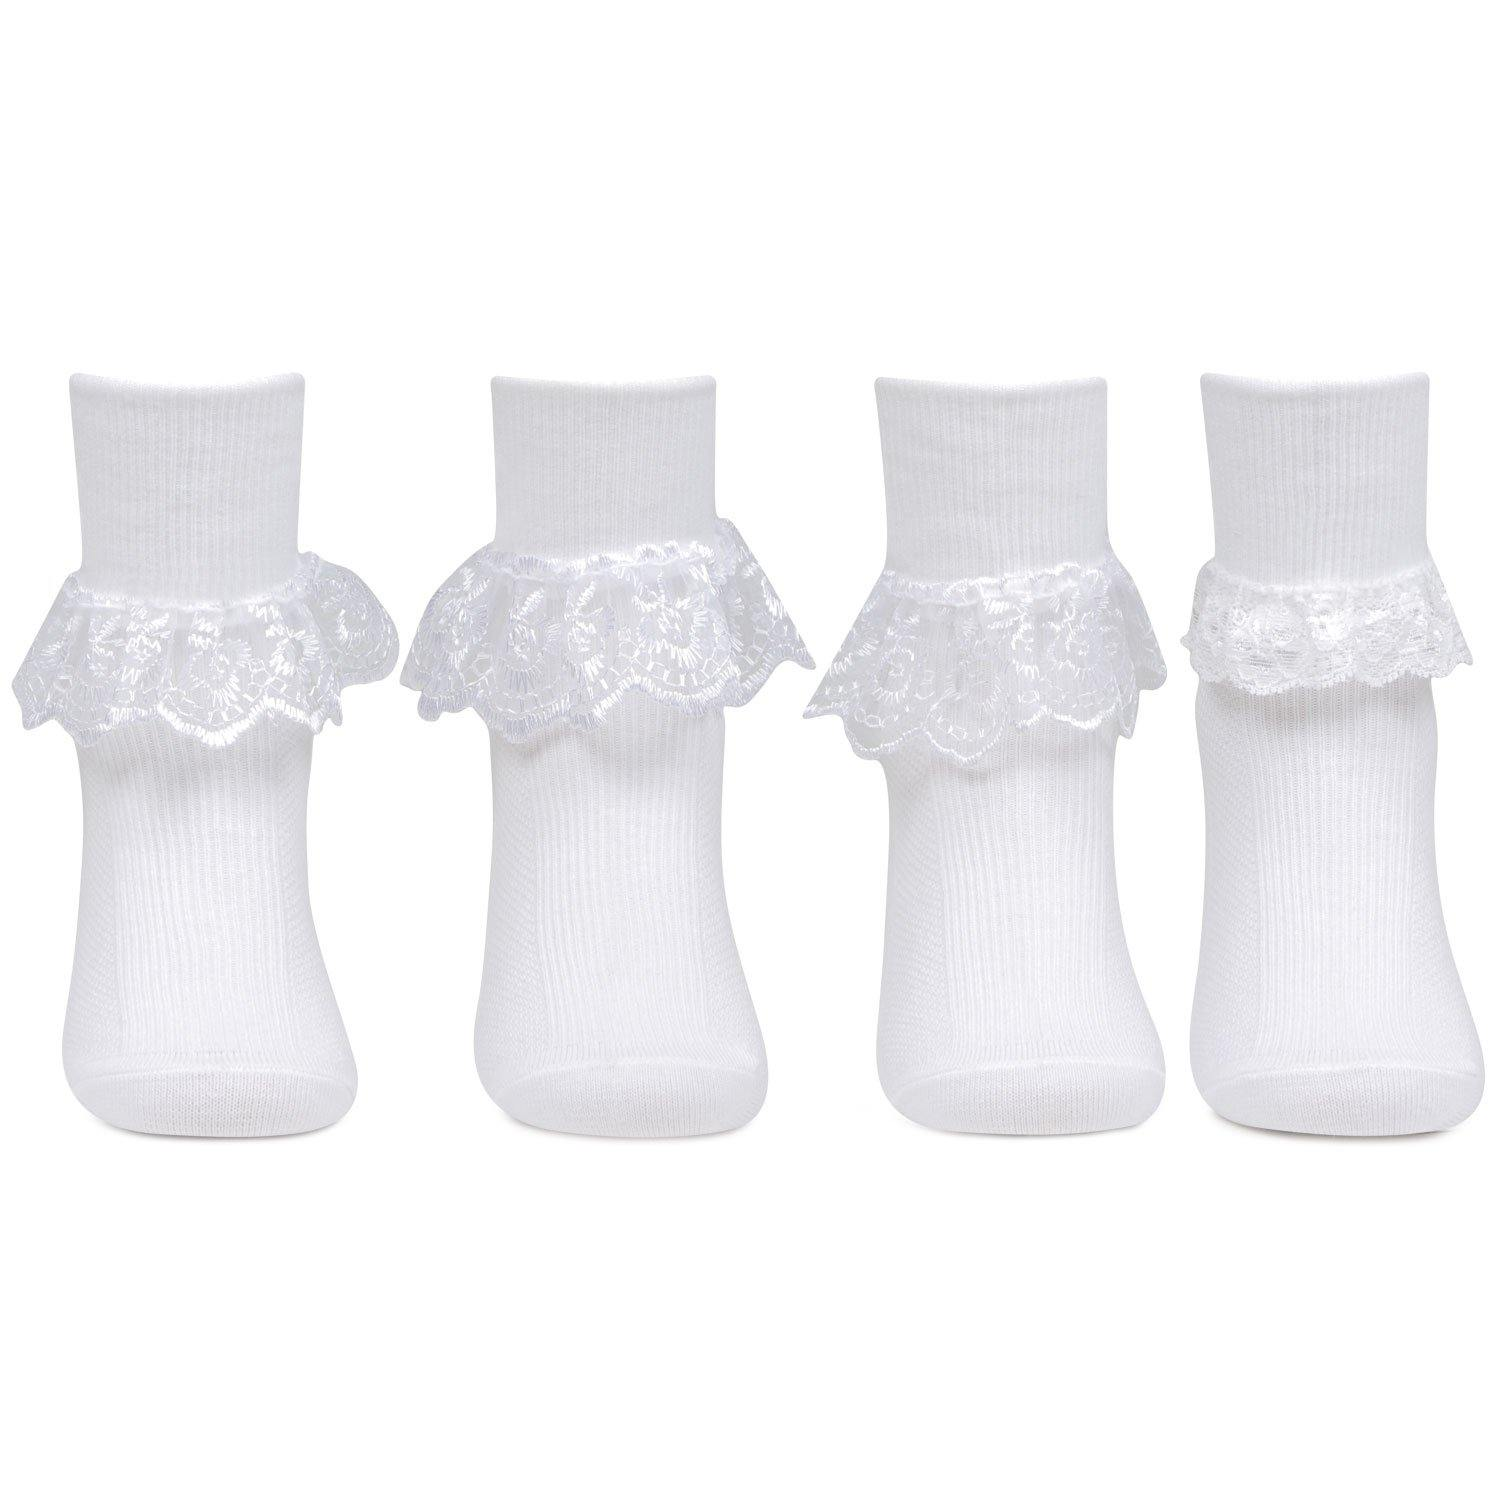 Fashionable Frill Socks